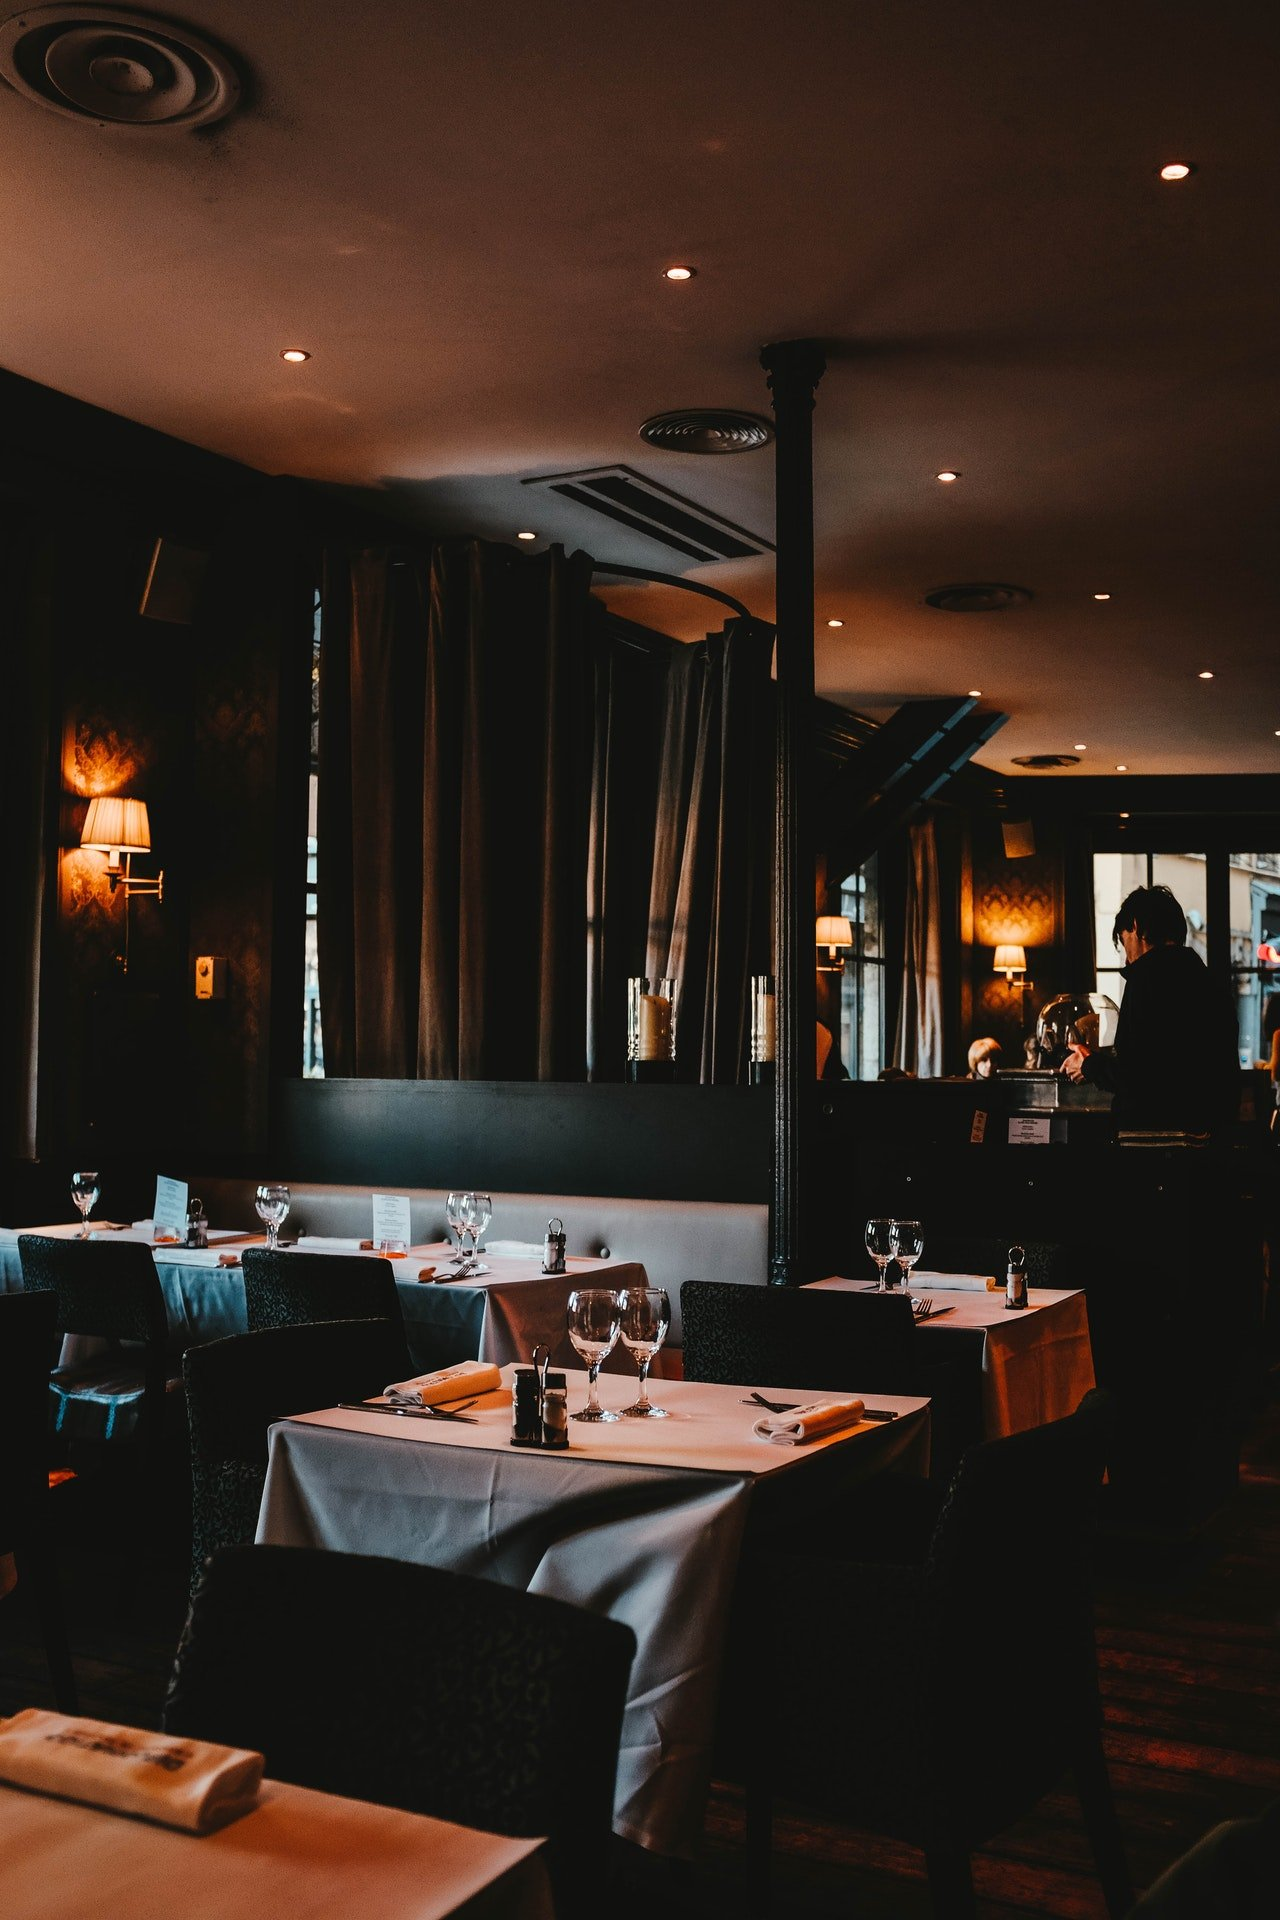 Inside view of a beautiful restaurant | Photo: Pexels